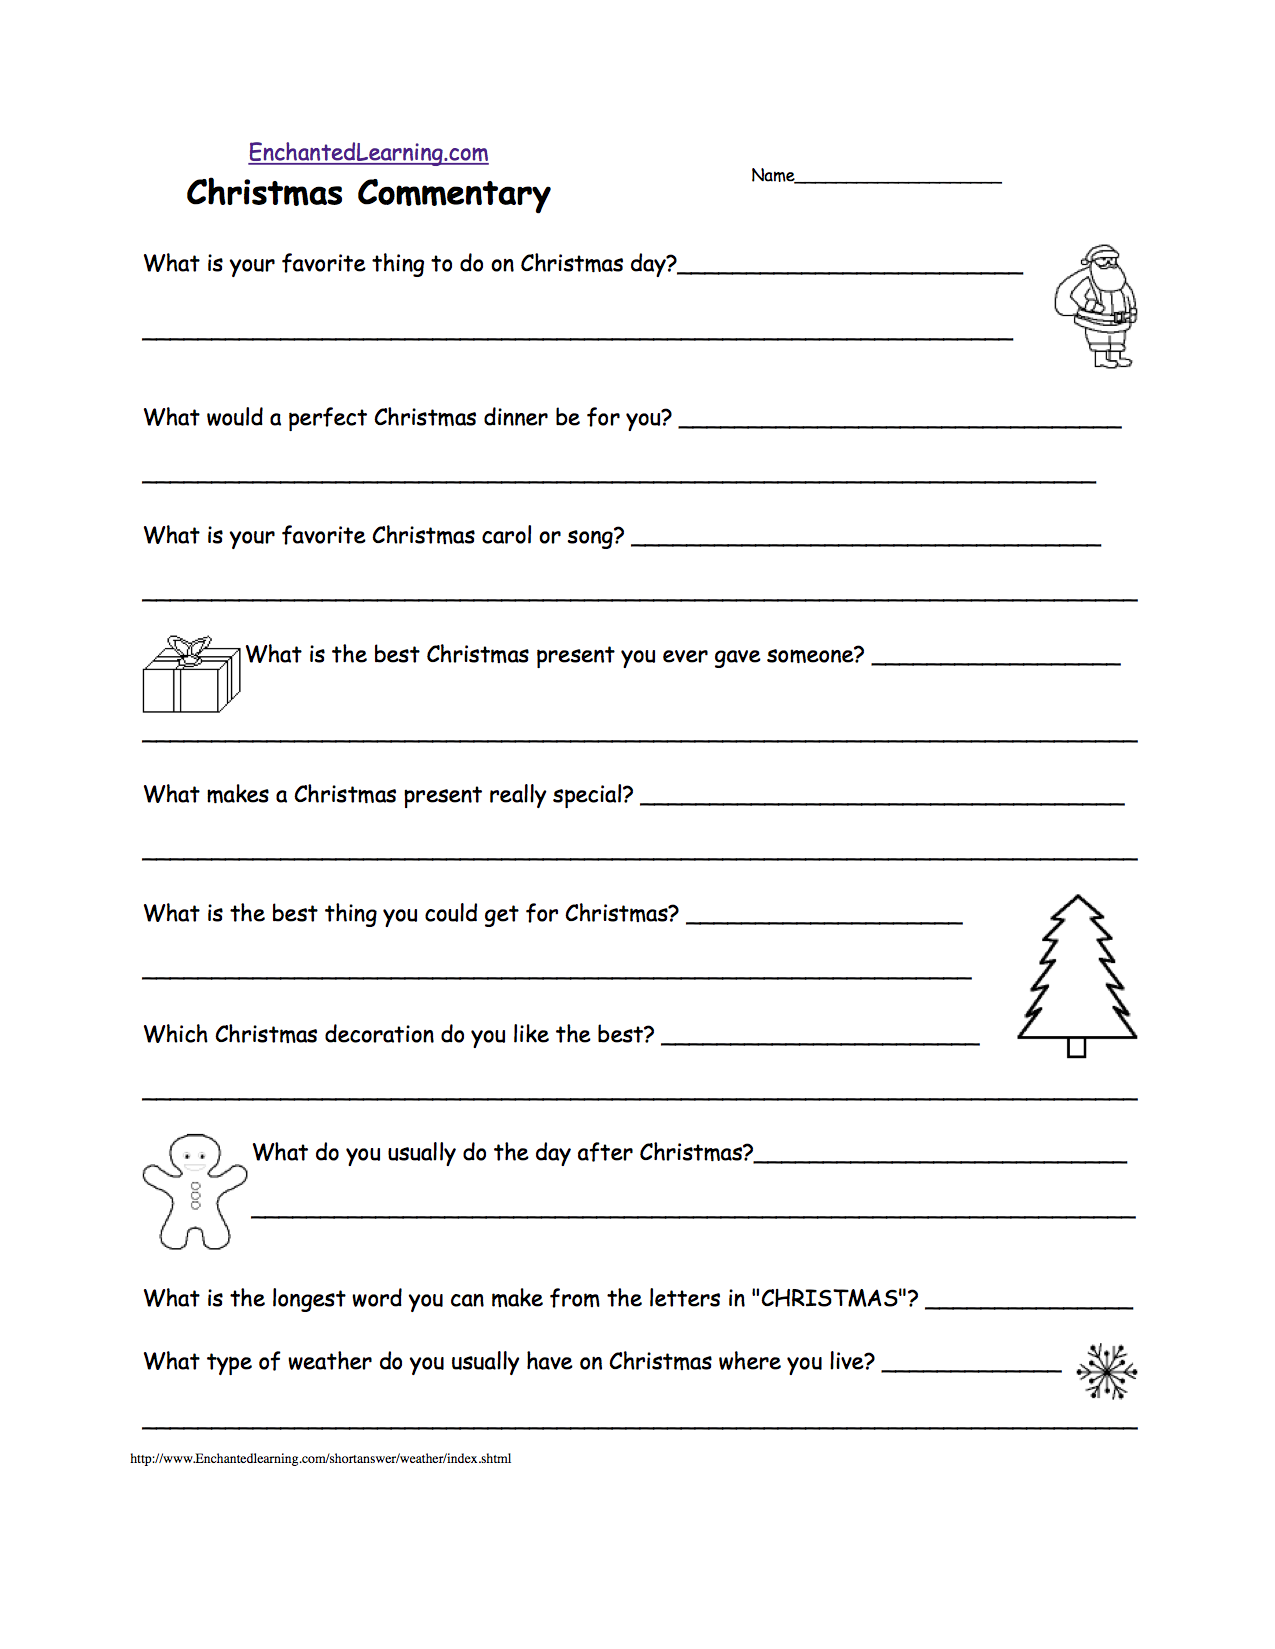 Worksheets High School Biology Worksheets Pdf short answer quizzes printable enchantedlearning com birthday